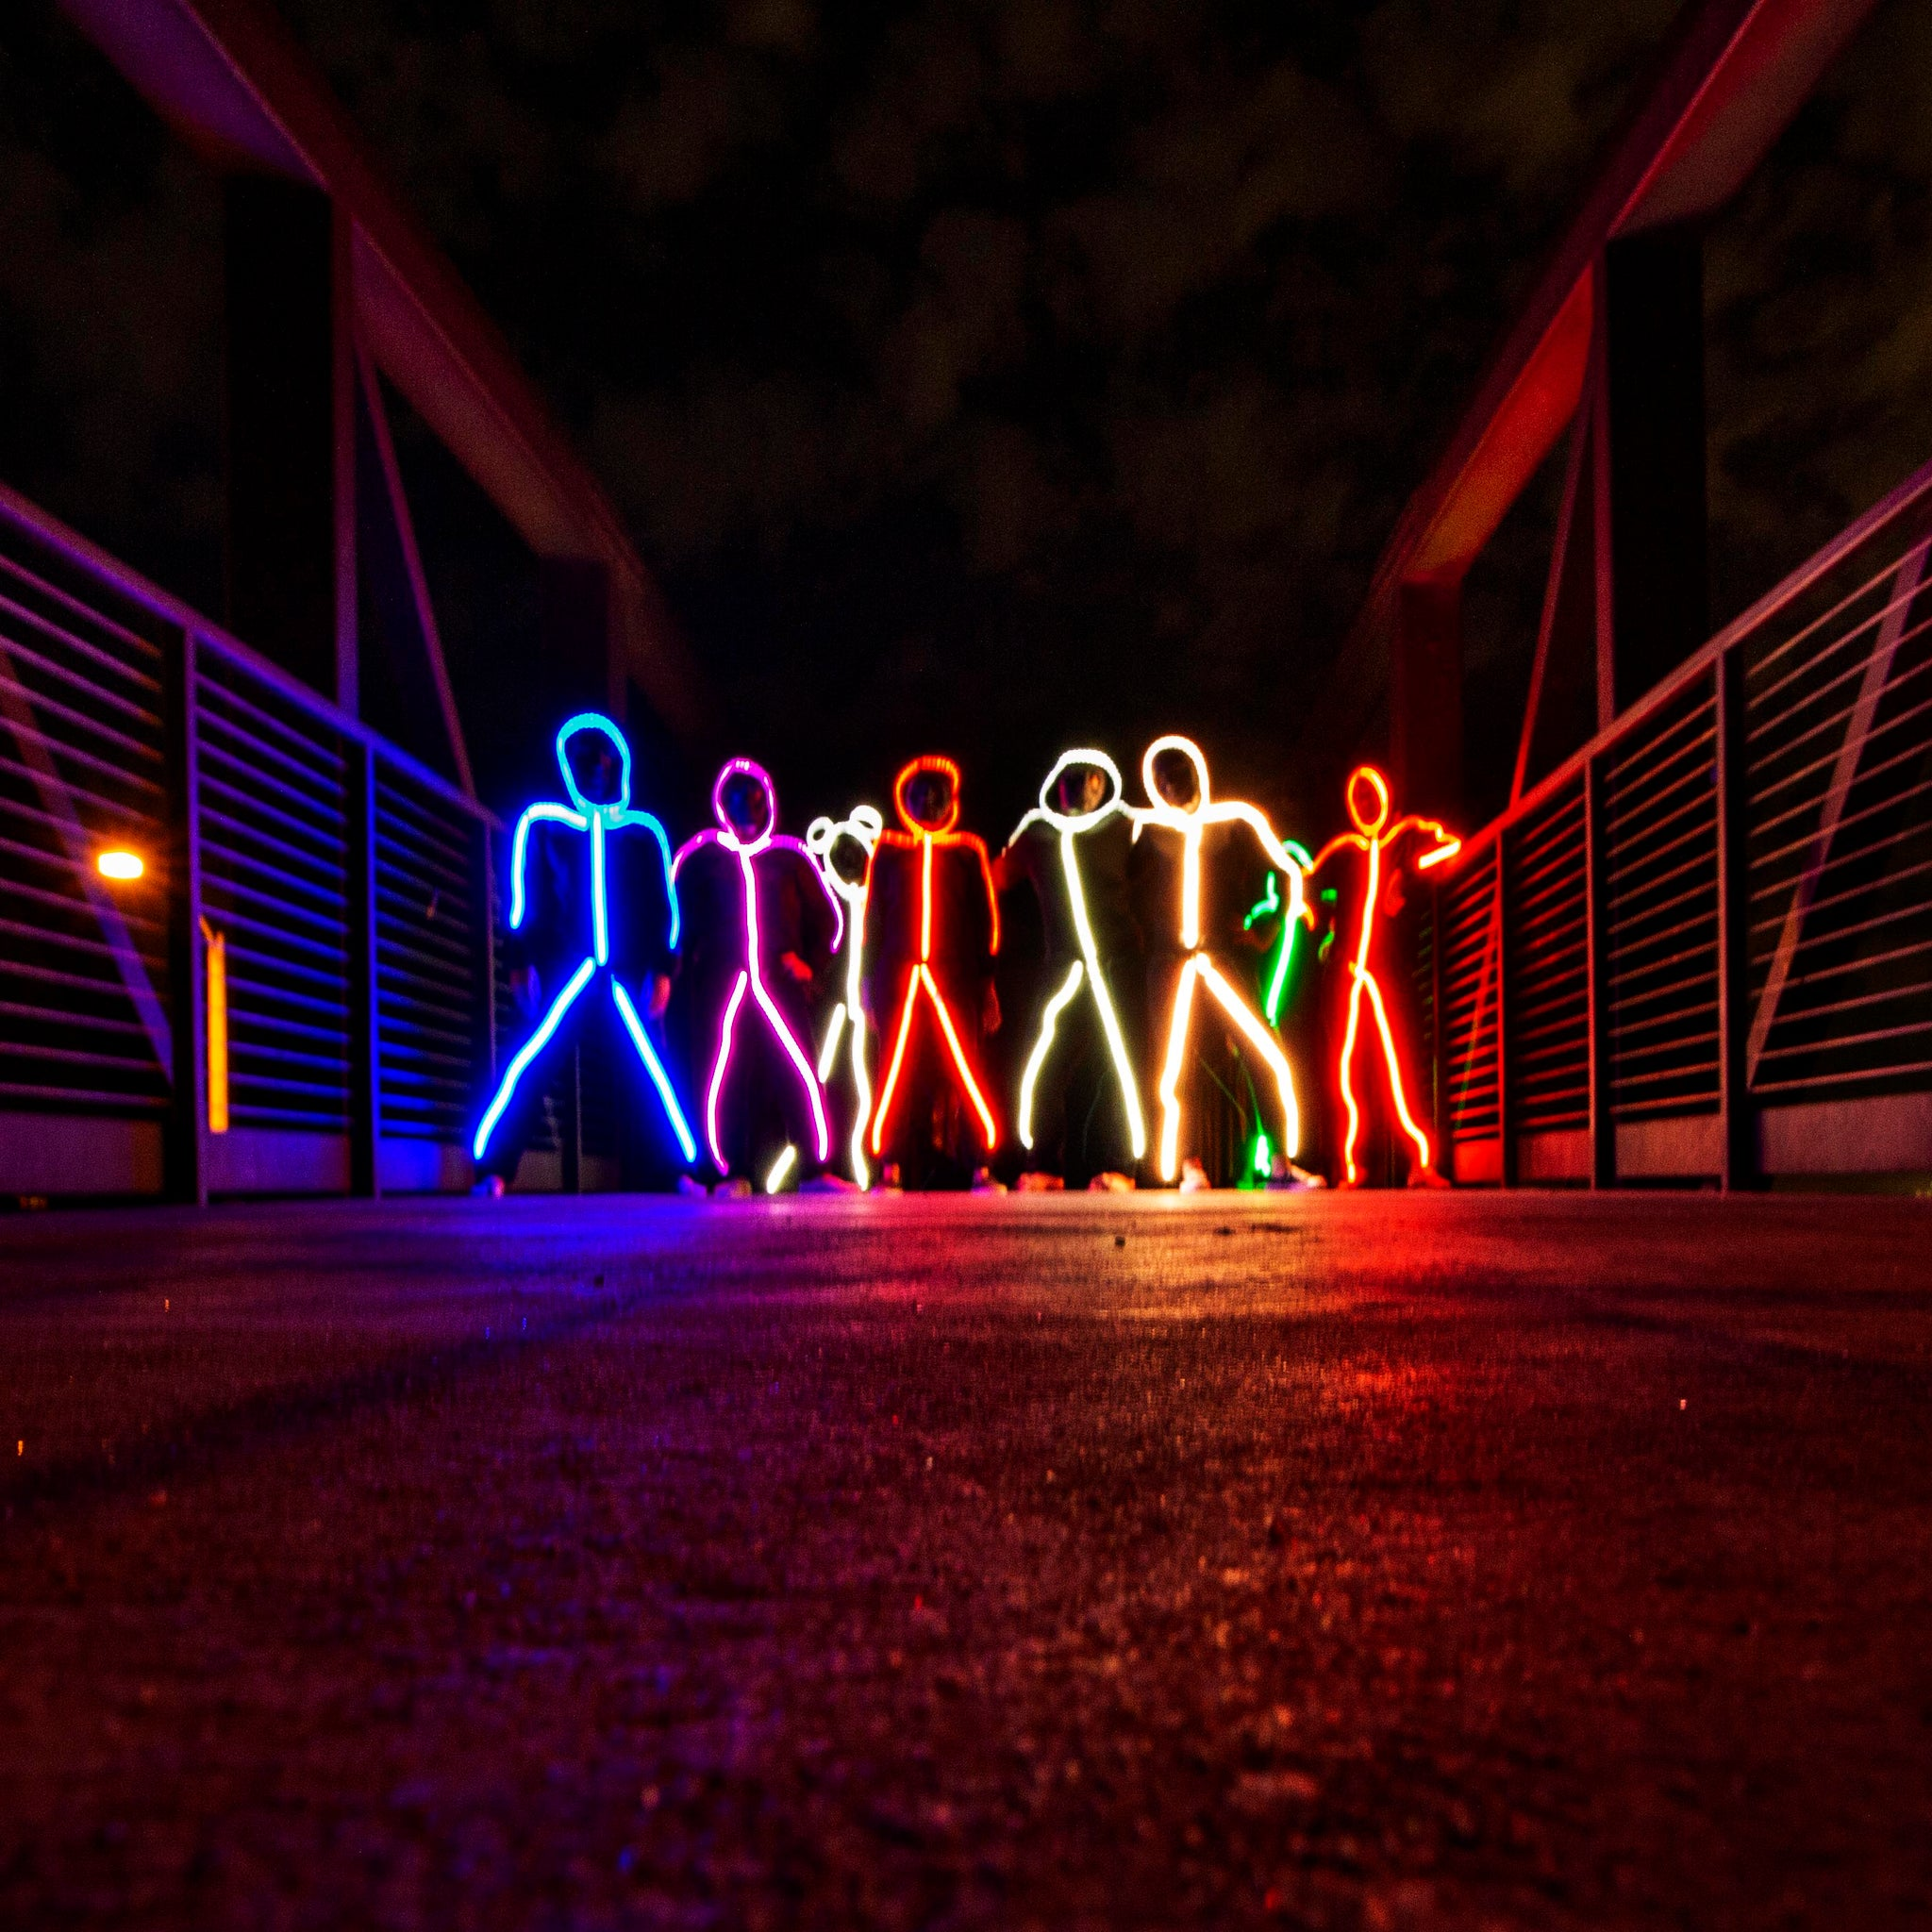 glowy zoey - the world's brightest led stick figure suit